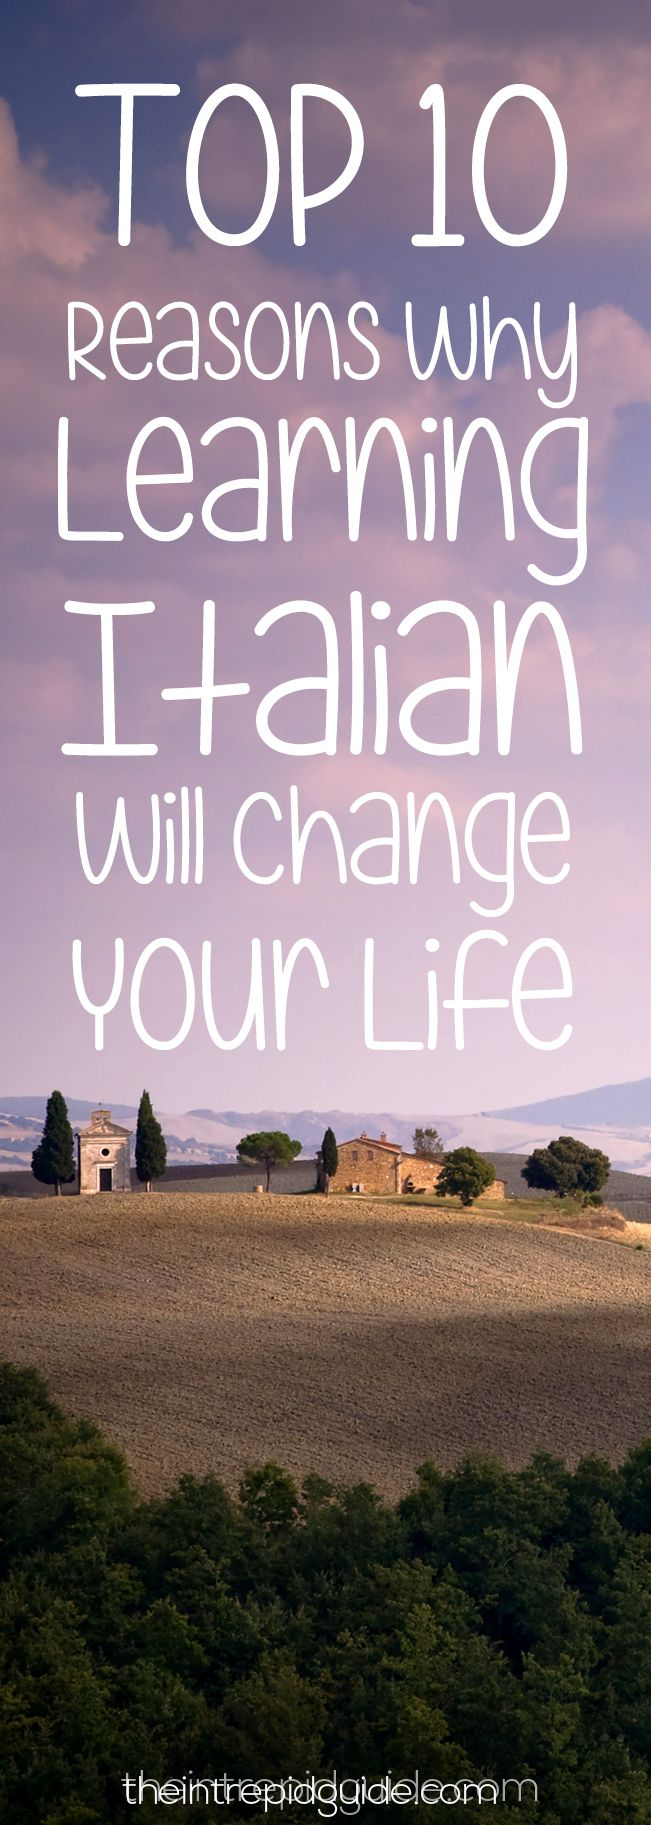 Italian Quotes About Life Beauteous New Italian Quotes With English Translation About Life